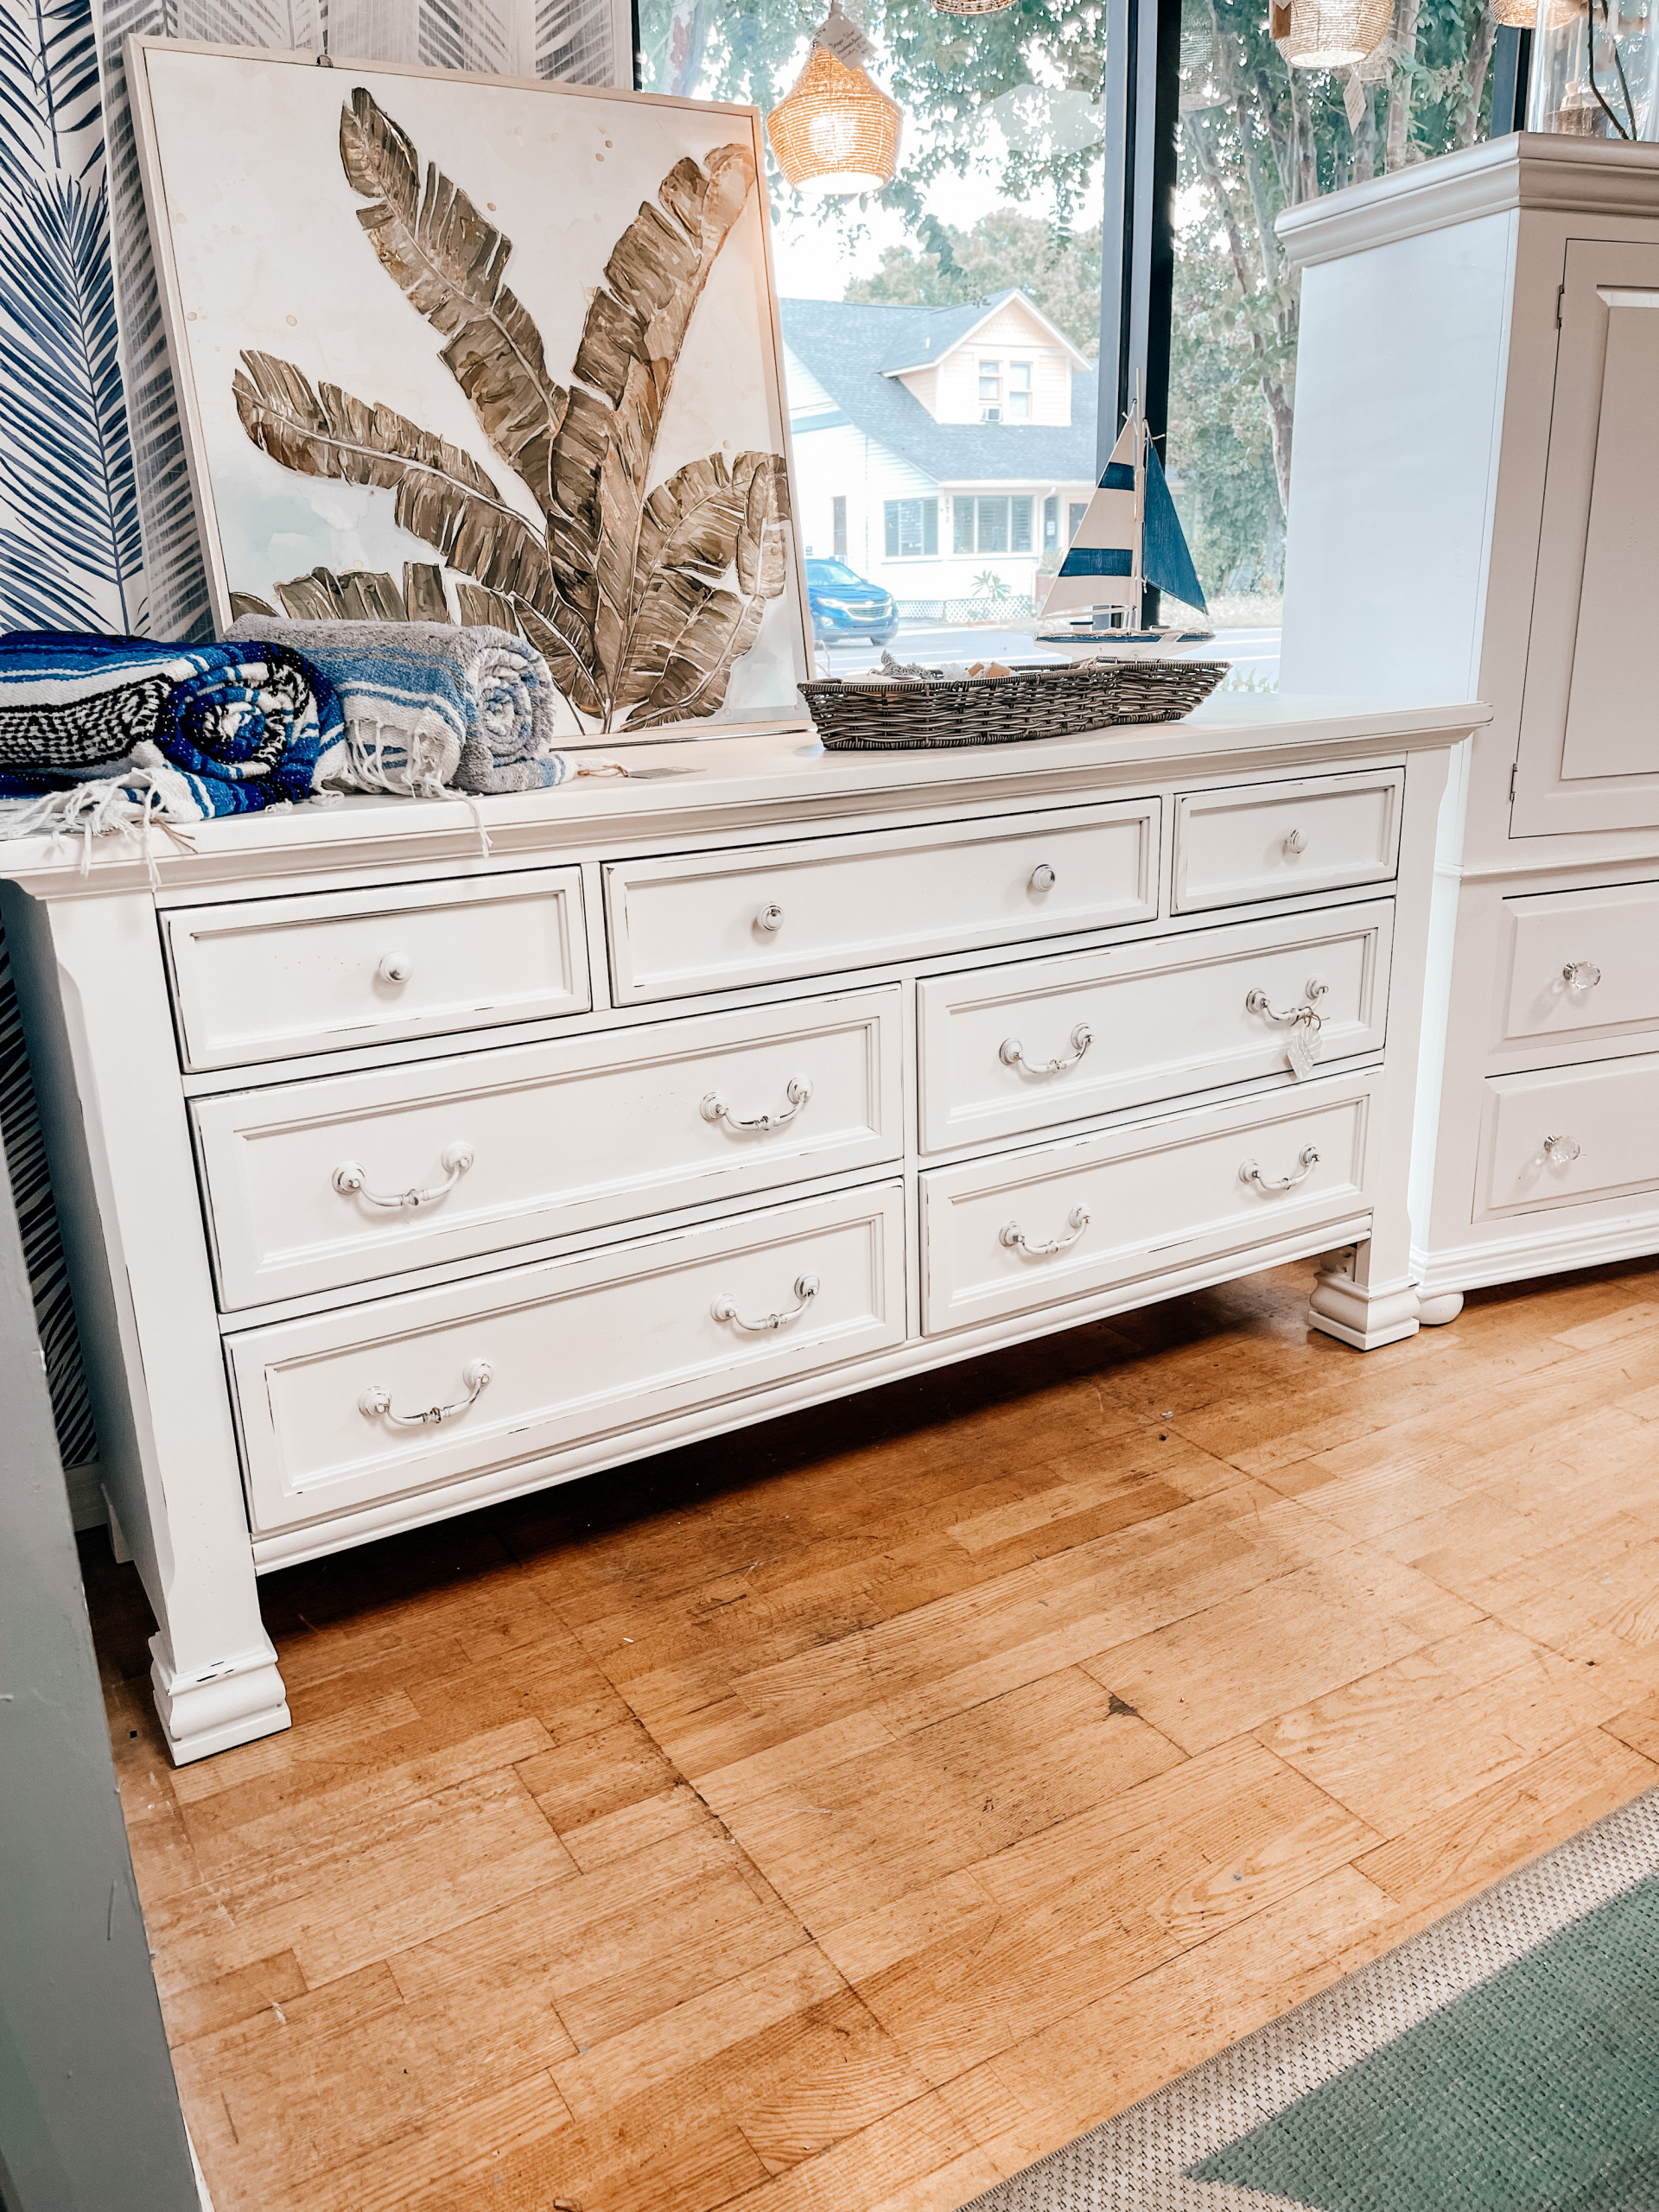 We love redesigning vintage and antique furniture to perfectly suit a new space! It's great for the environment and it allows us to offer our clients truly unique spaces.